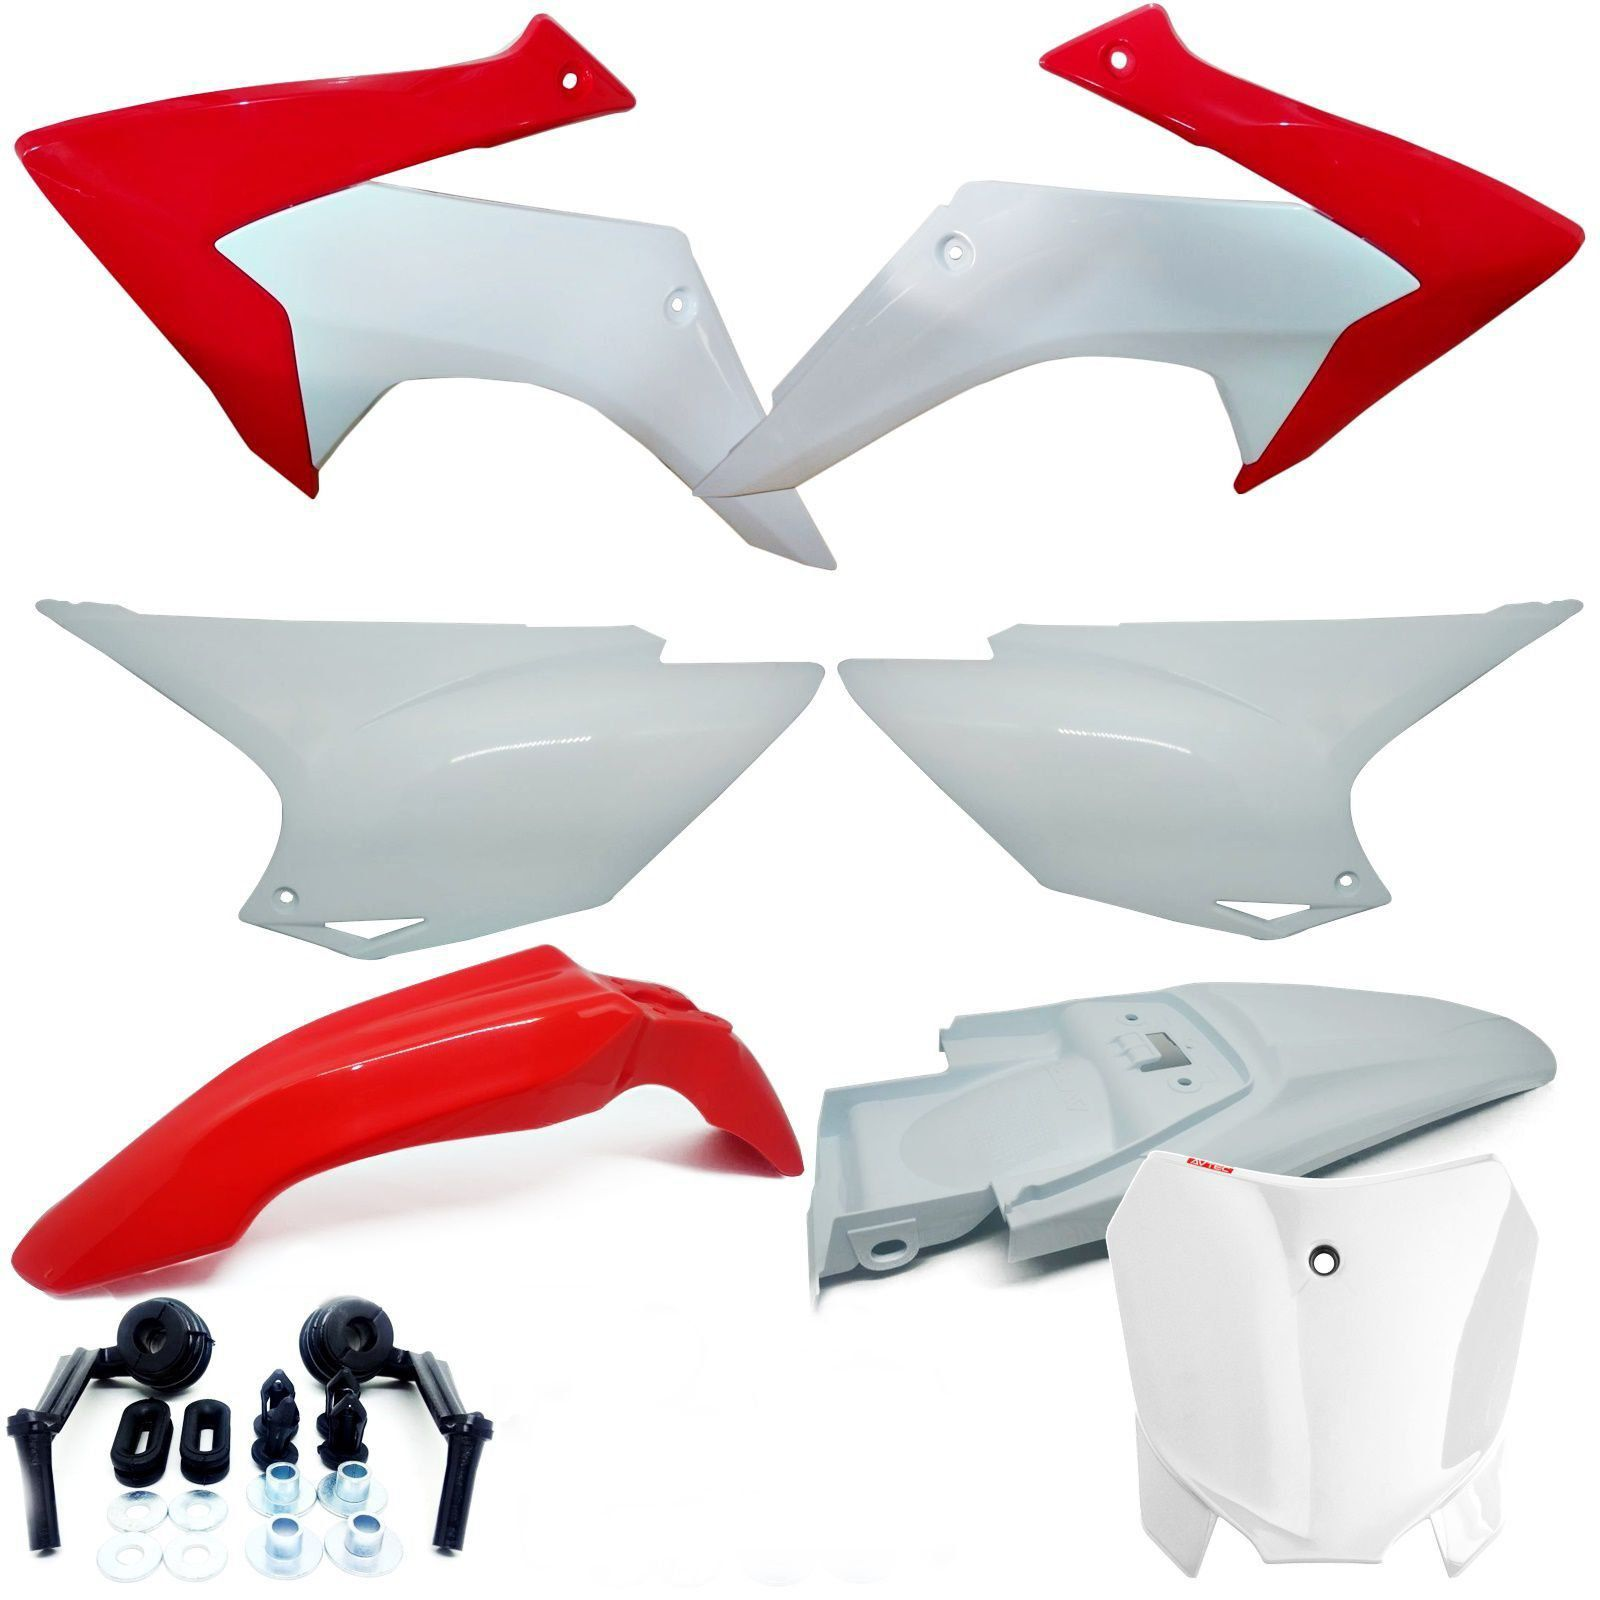 Kit Plástico Crf 230 Carenagem Com Number Plate Avtec